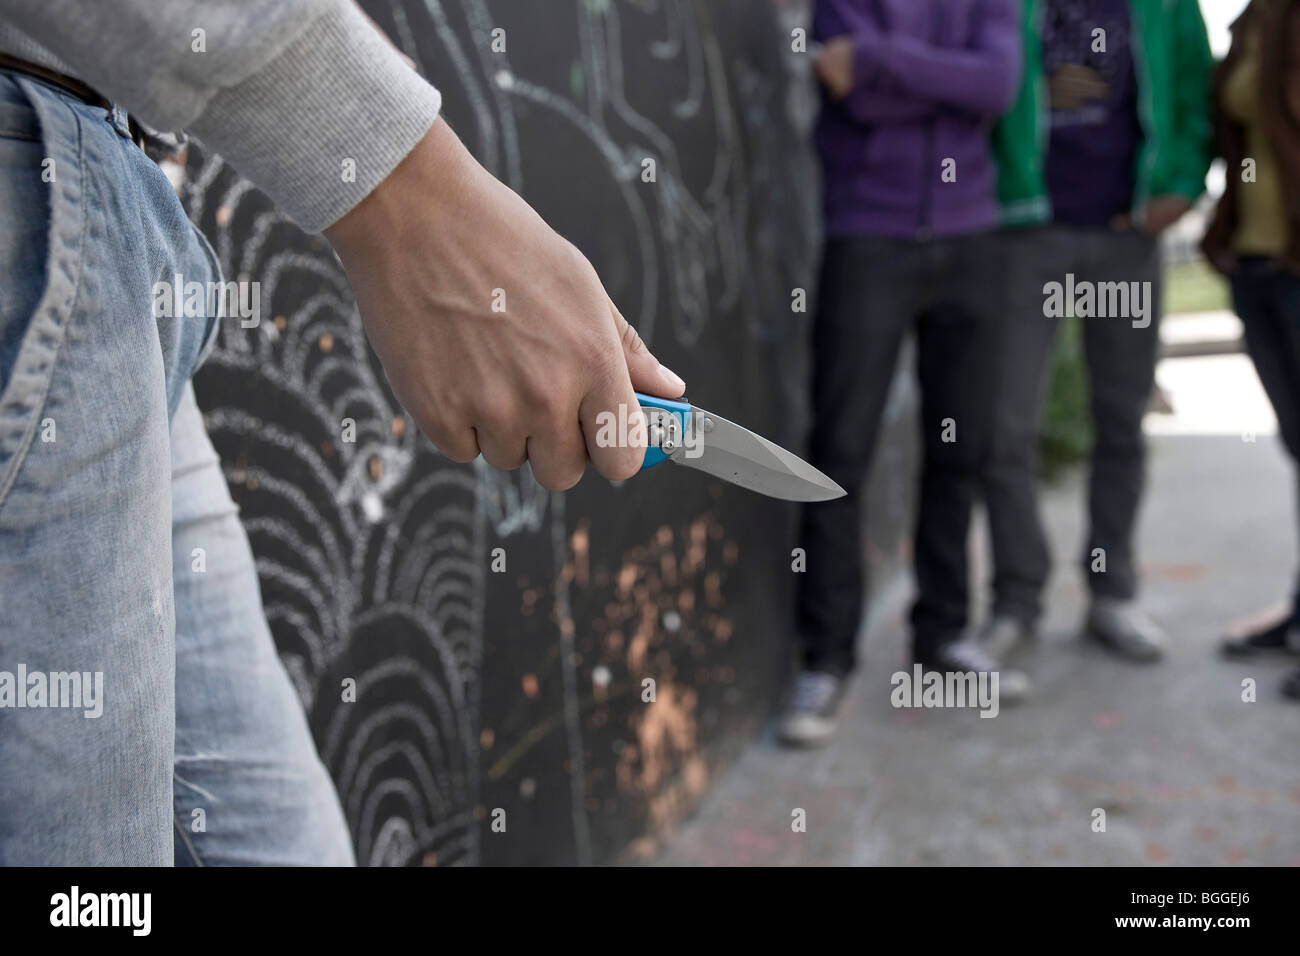 Young man holding a pocketknife, teenager in the background - Stock Image